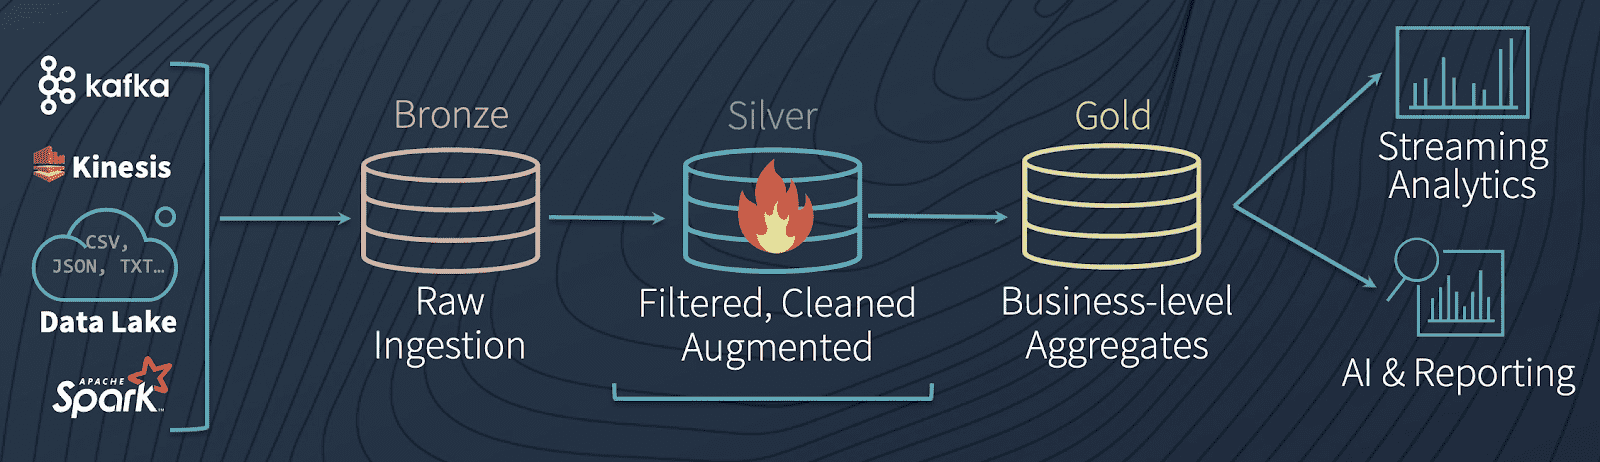 Delta Architecture diagram, highlighting the Silver stage (filtering) of the machine learning pipeline.